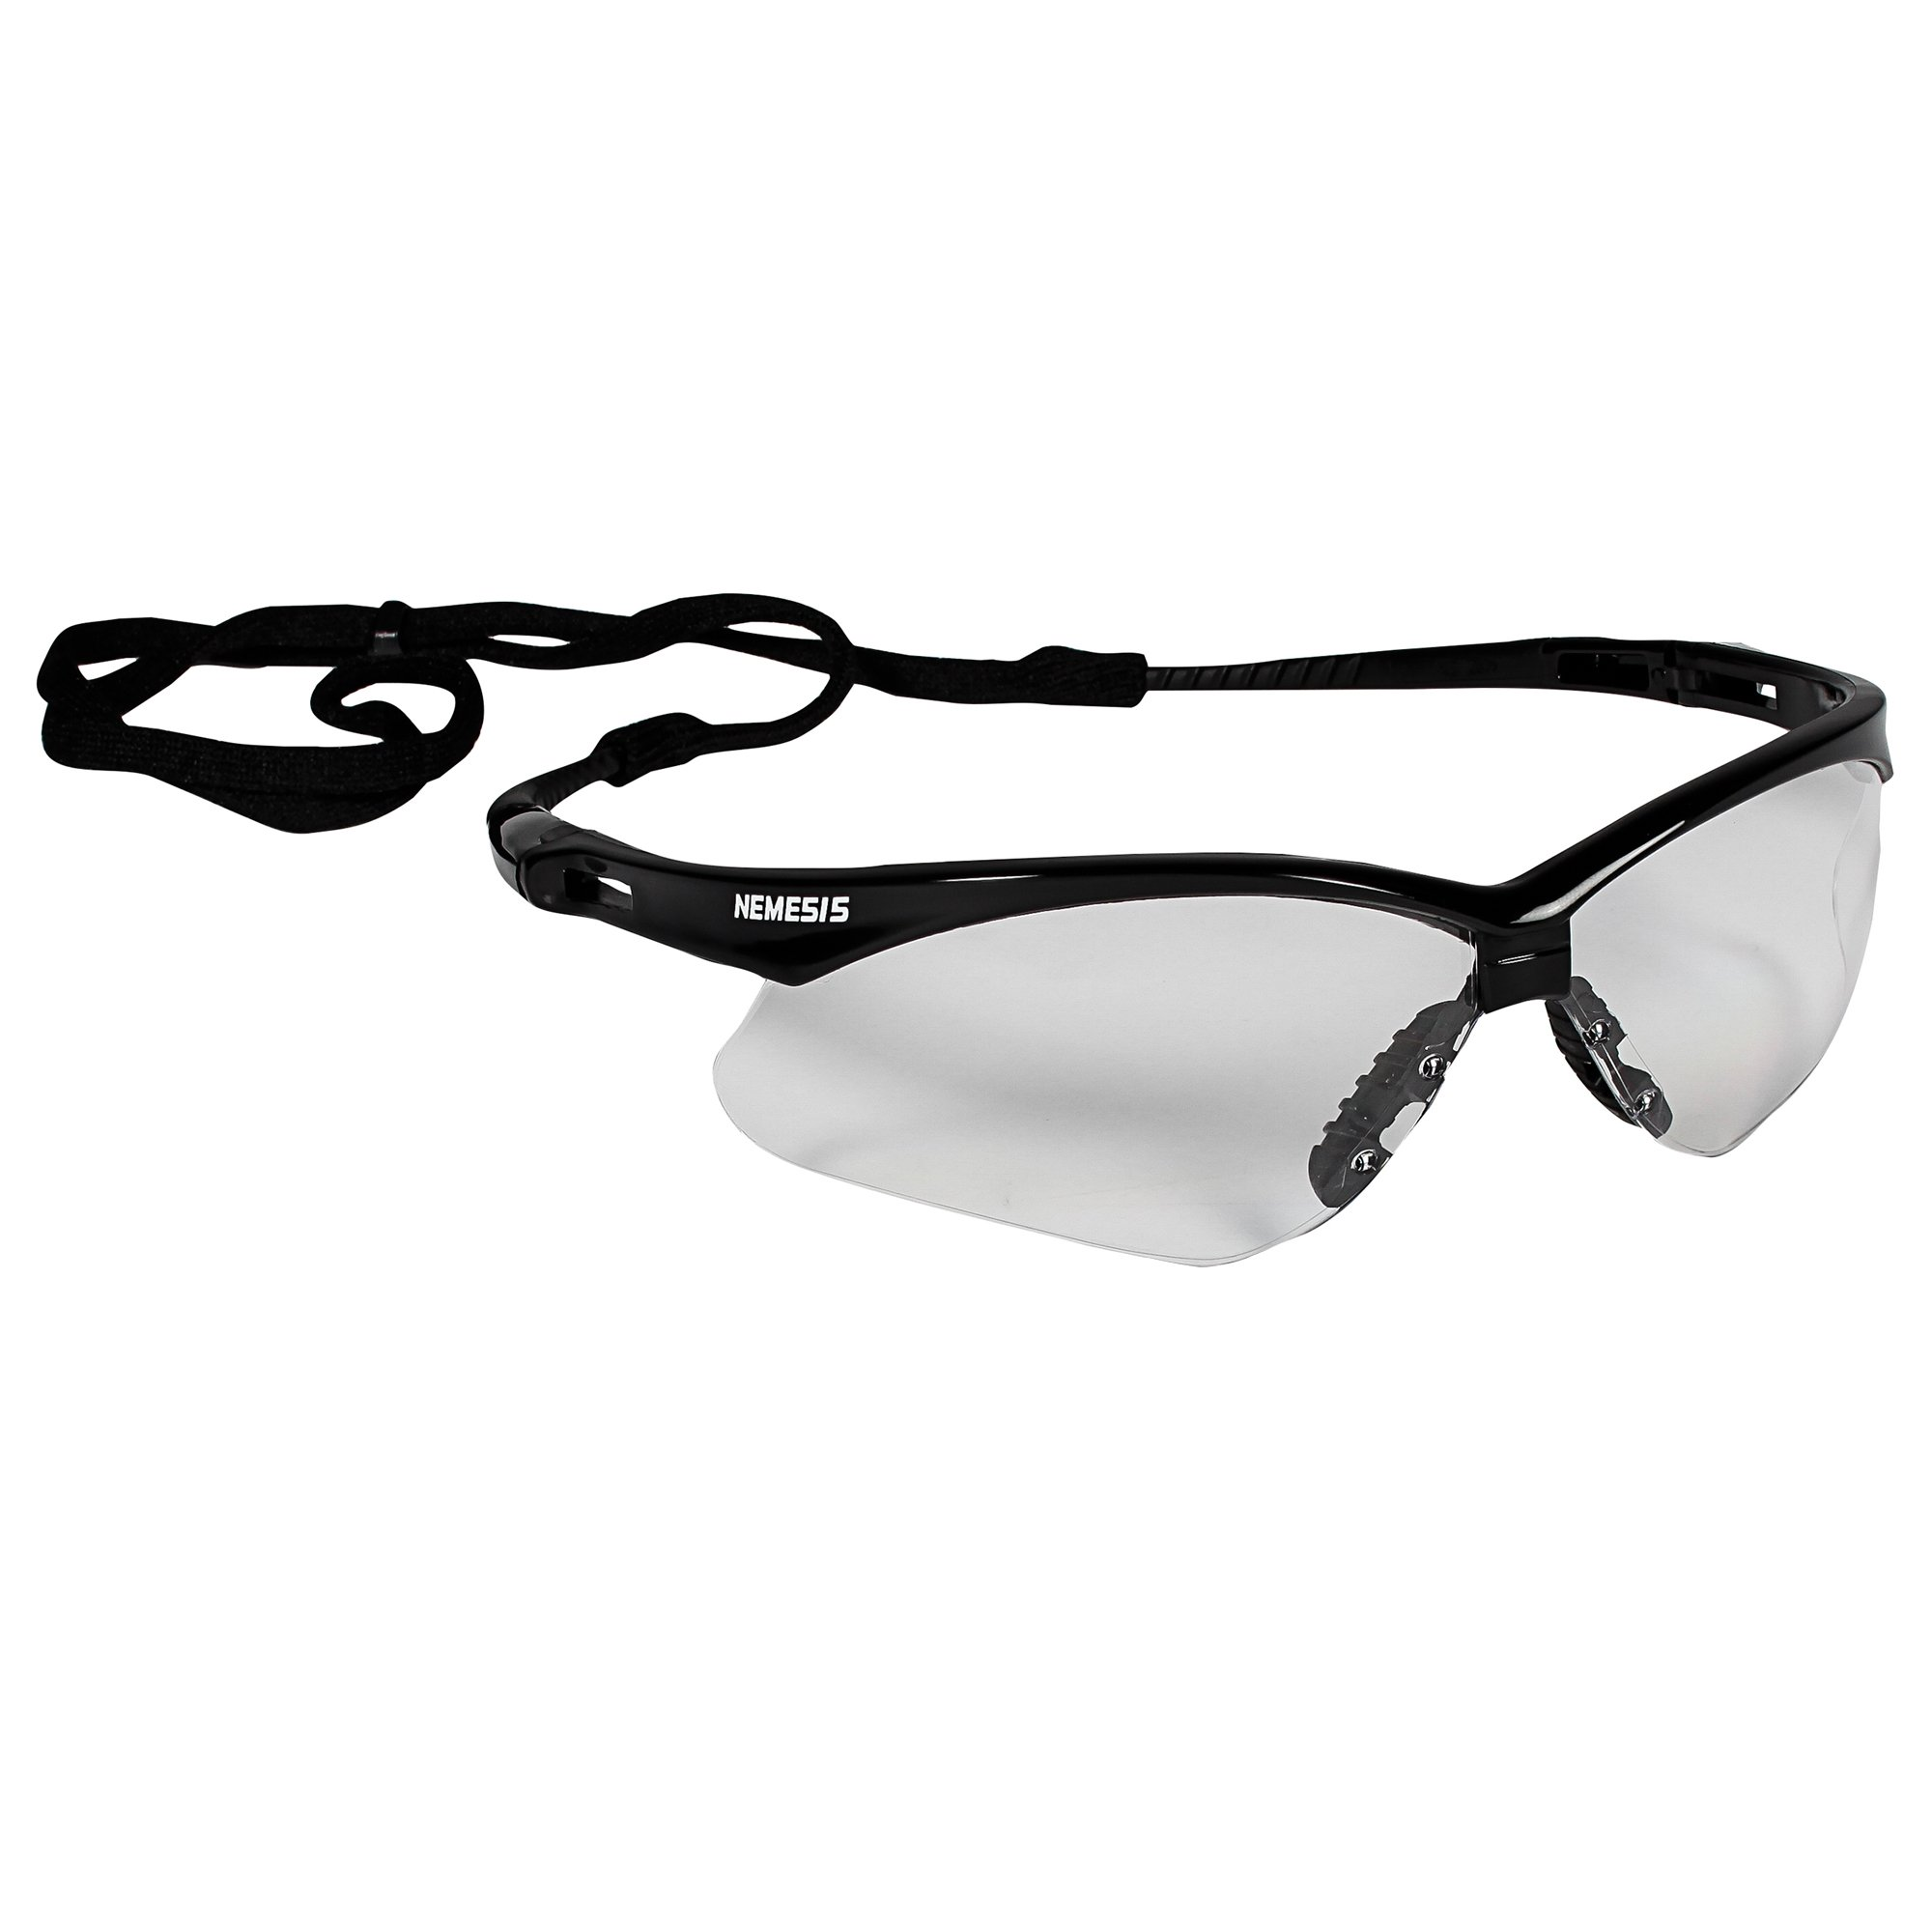 Jackson Safety V30 Nemesis Safety Glasses (25676), Clear with Black Frame, 12 Pairs / Case by Jackson Safety